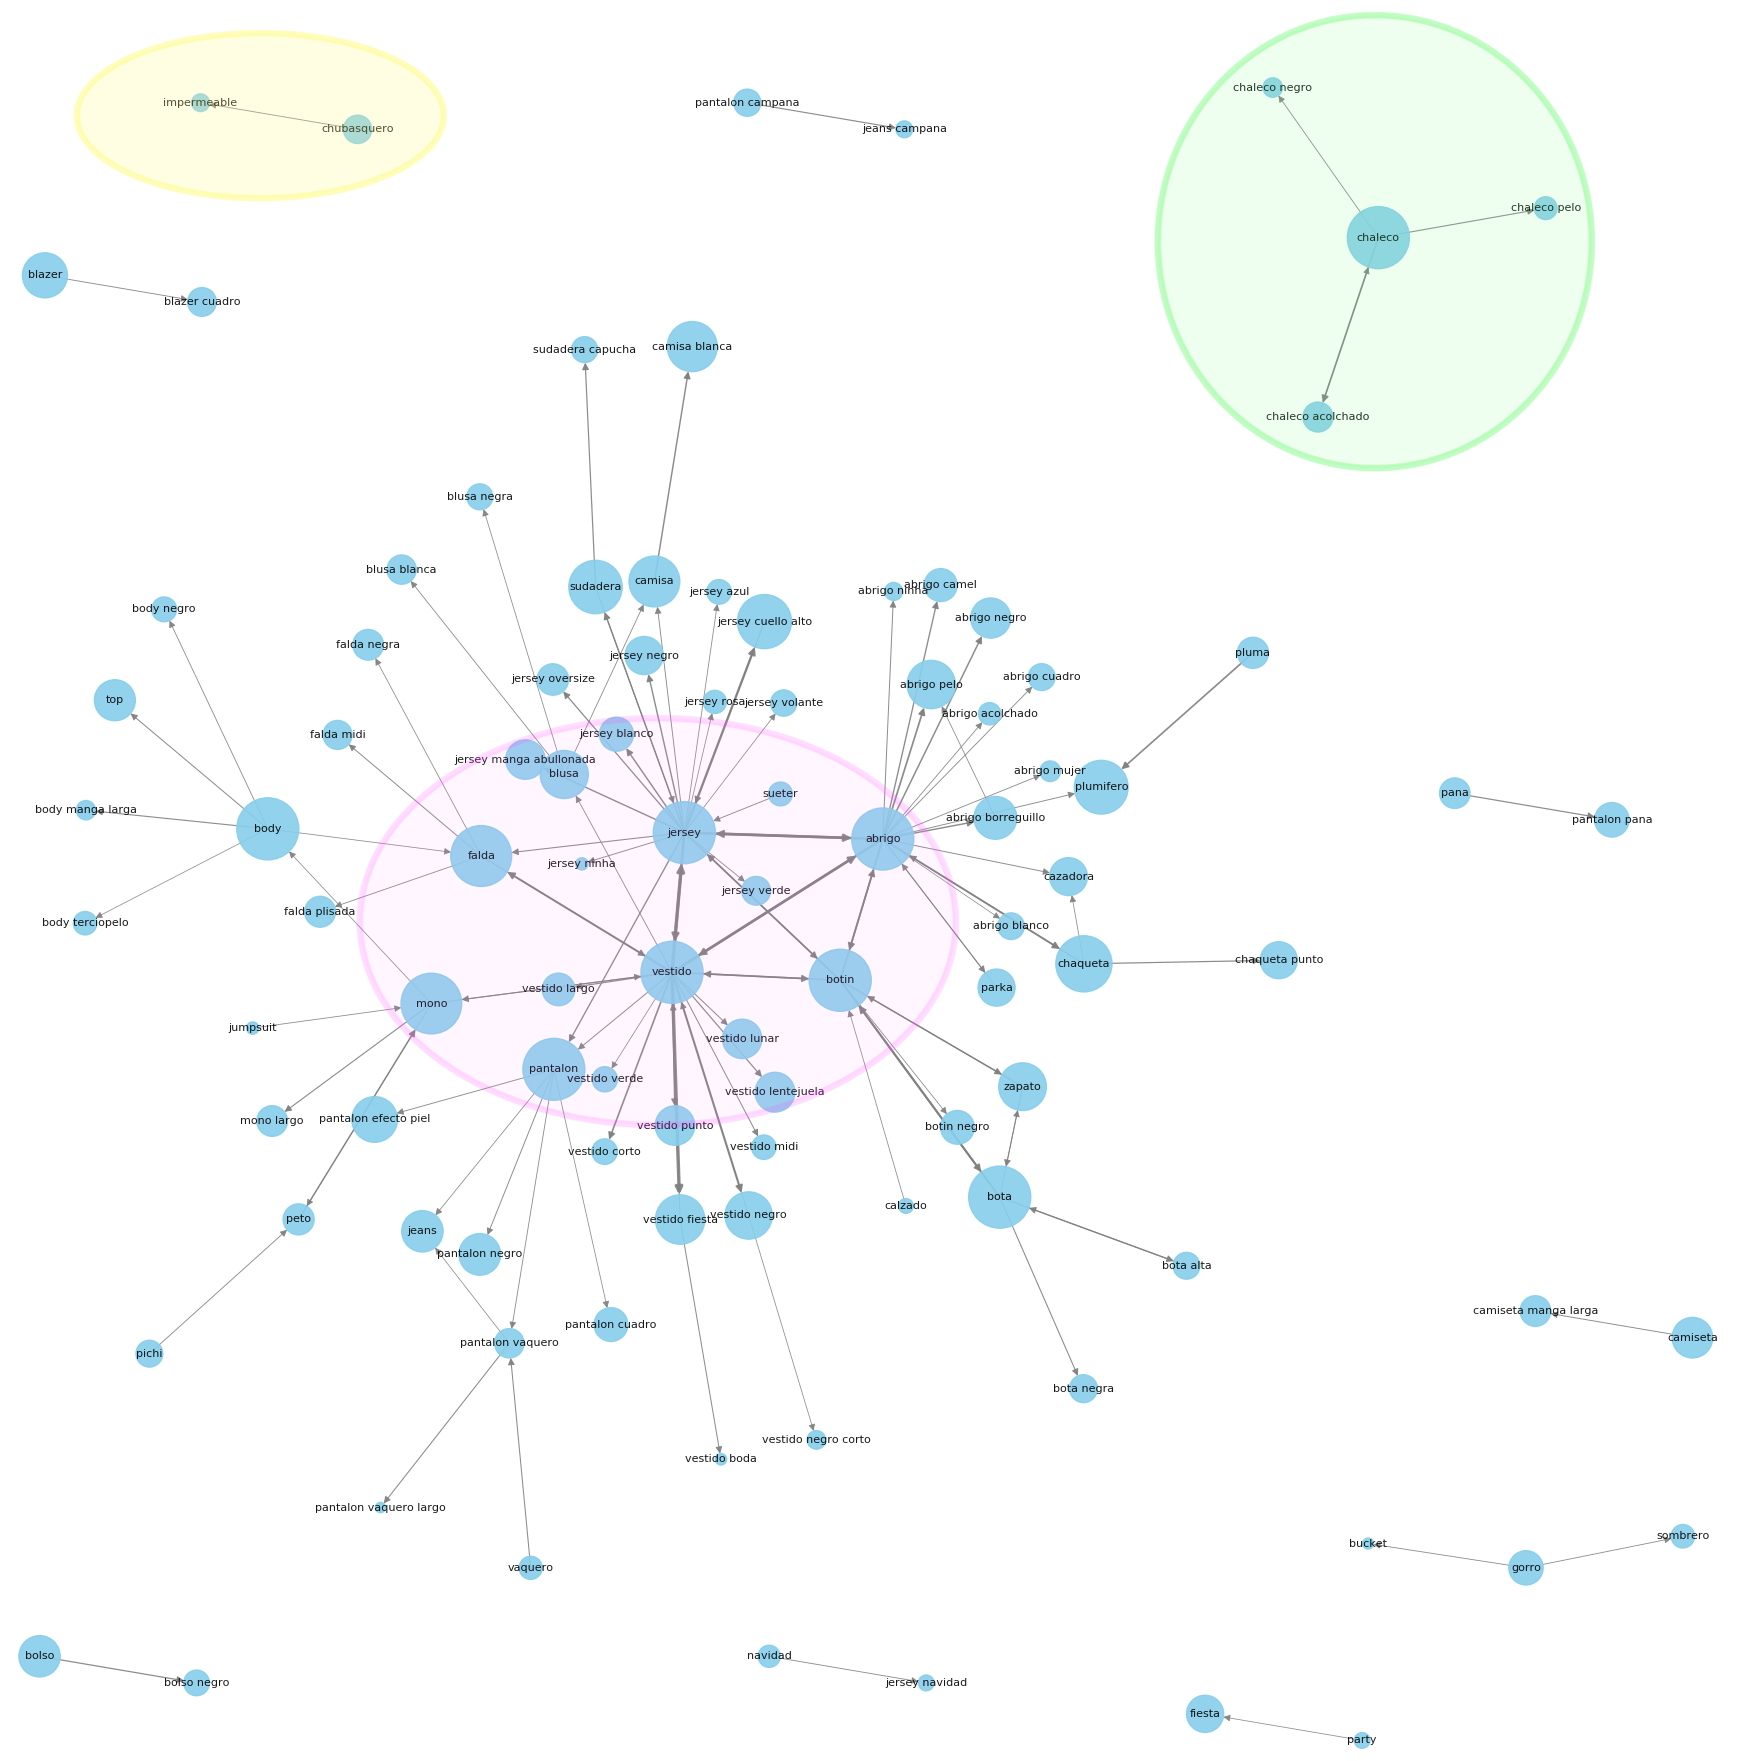 Graph representing fashion shop data composed of a main cluster with the most popular search terms (pink) and outliers corresponding mainly to refinement queries (green) or synonyms (yellow).